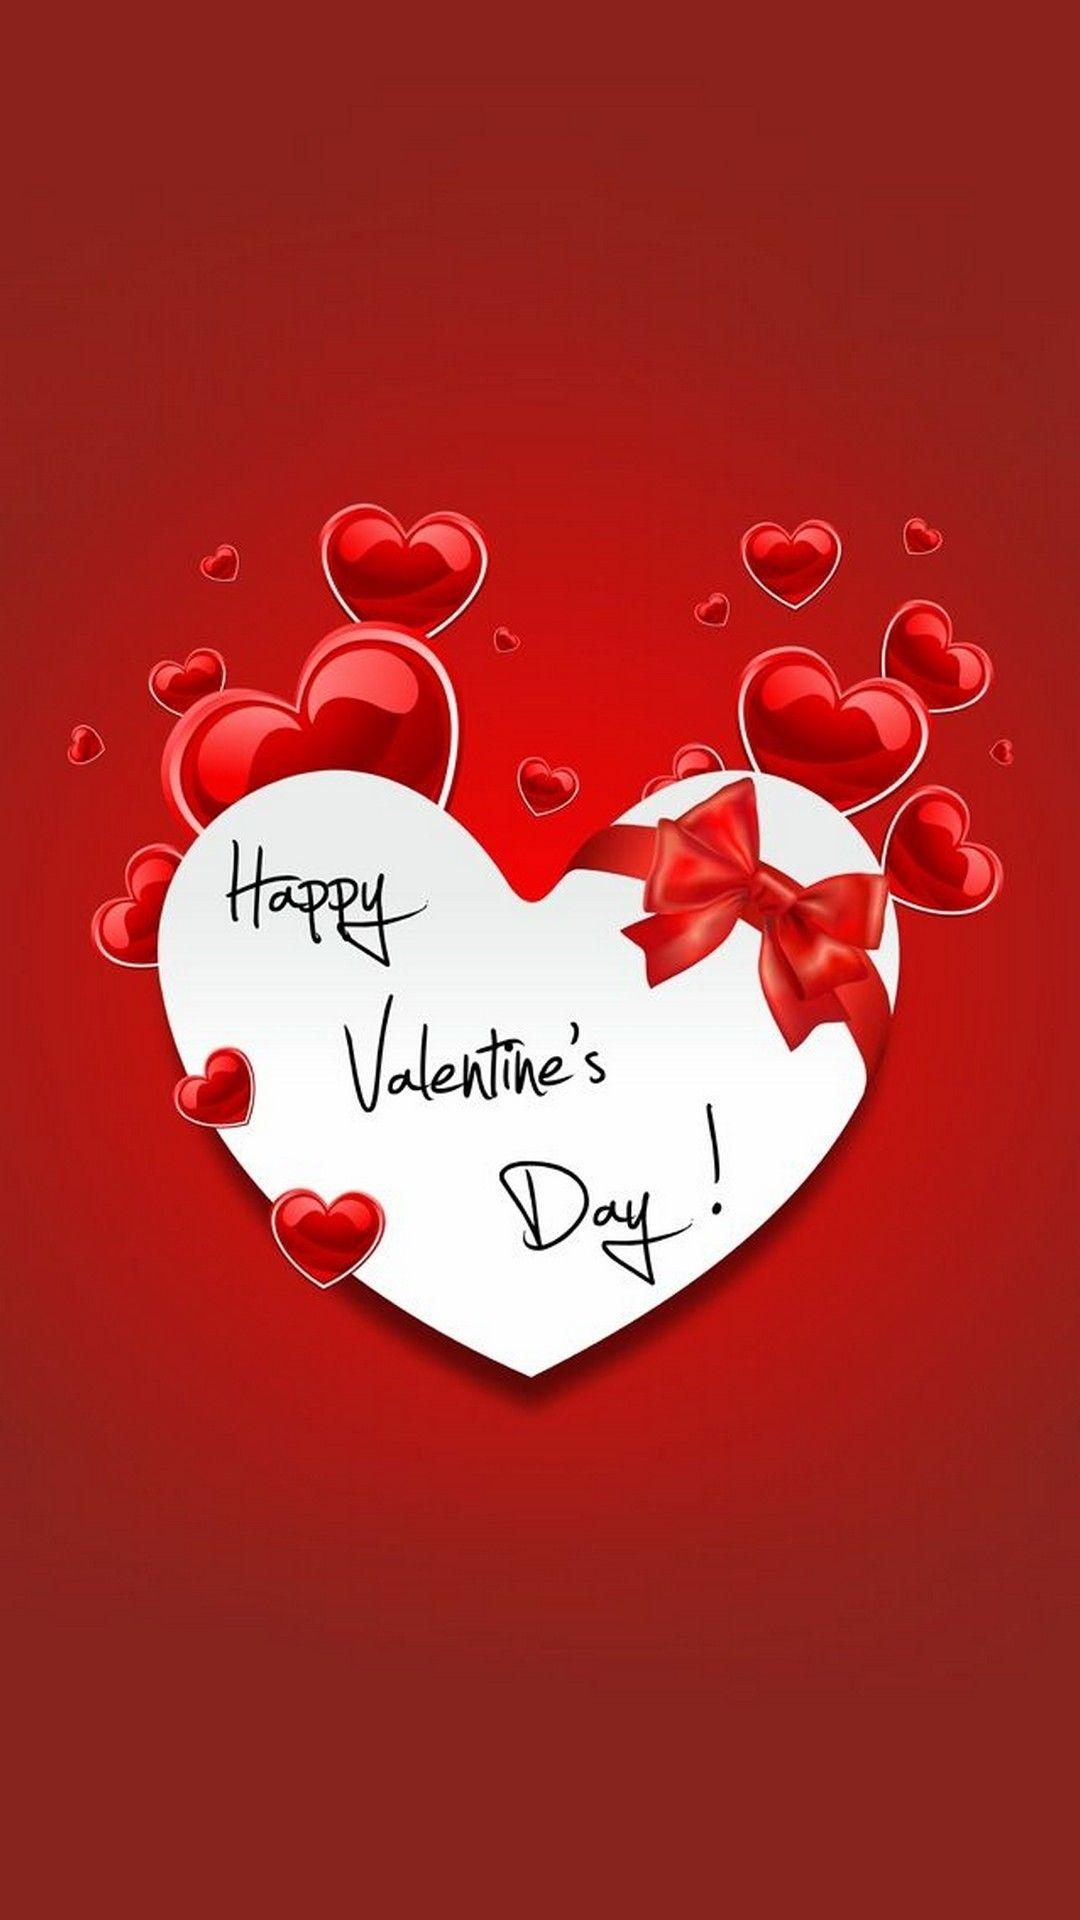 Happy Valentine Day iPhone Wallpaper | 2019 3D iPhone Wallpaper